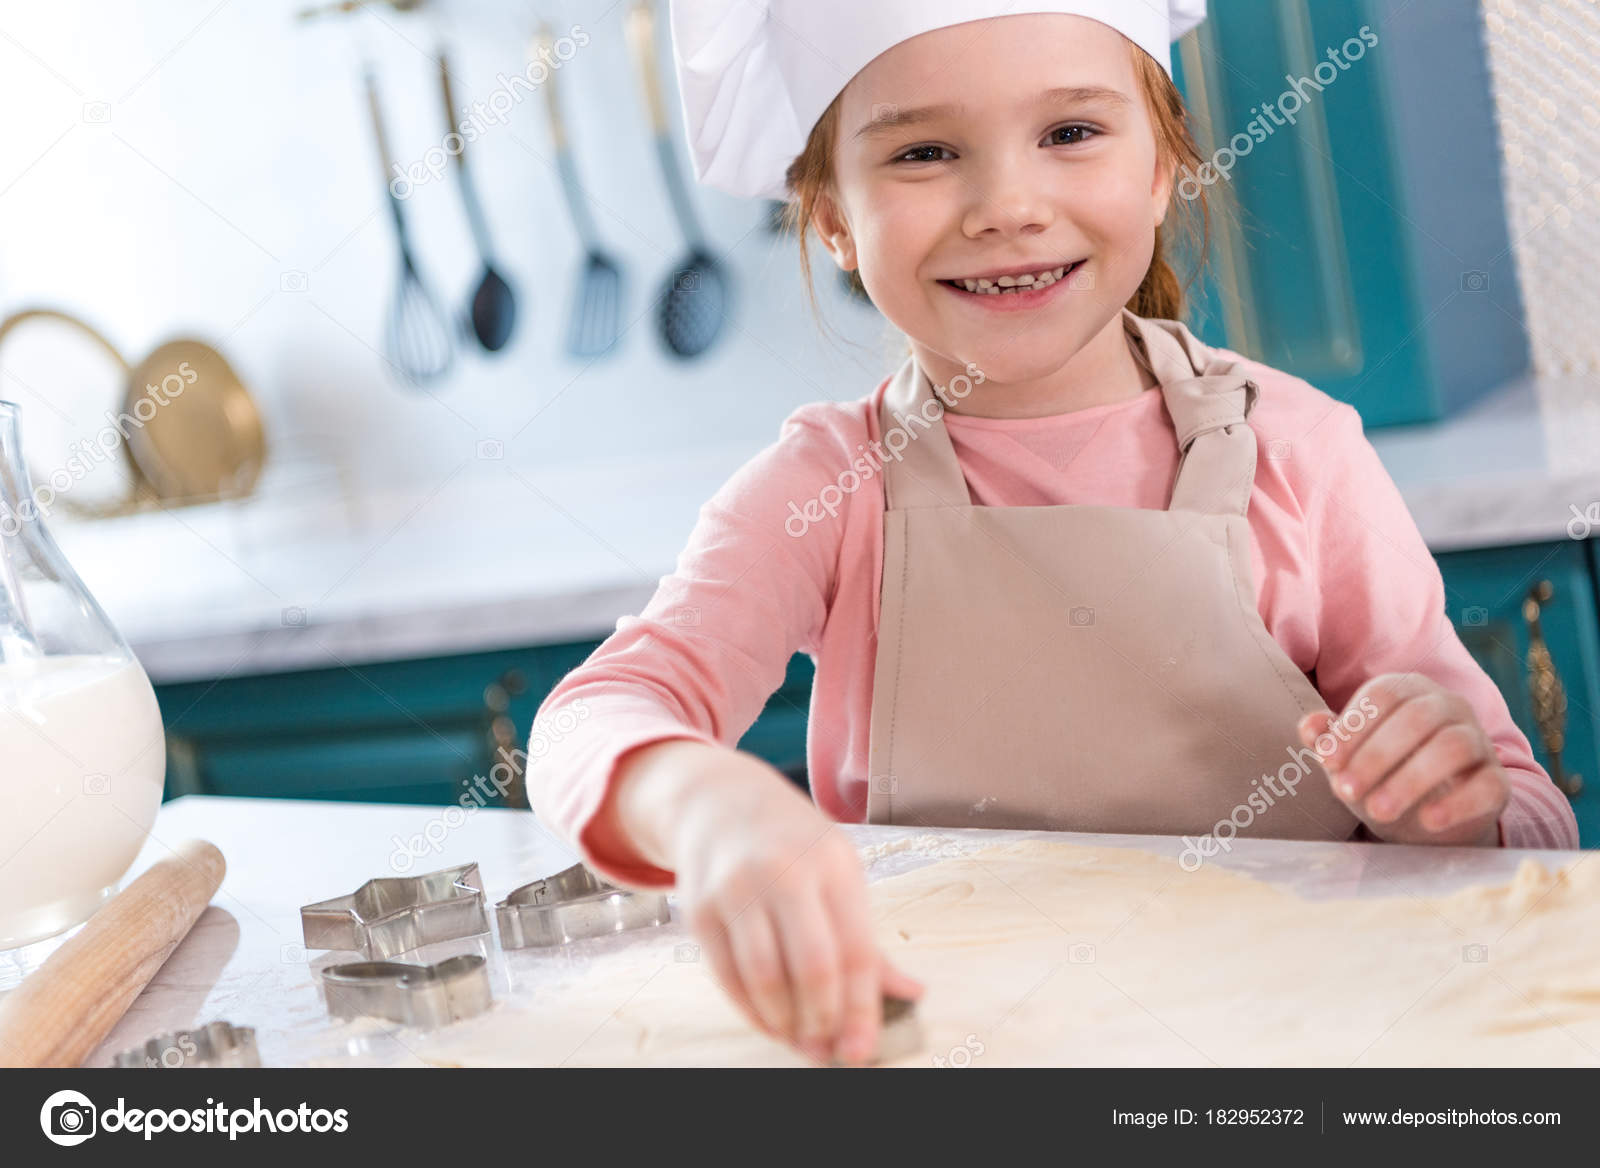 Adorable Child Chef Hat Apron Smiling Camera While Preparing Cookies